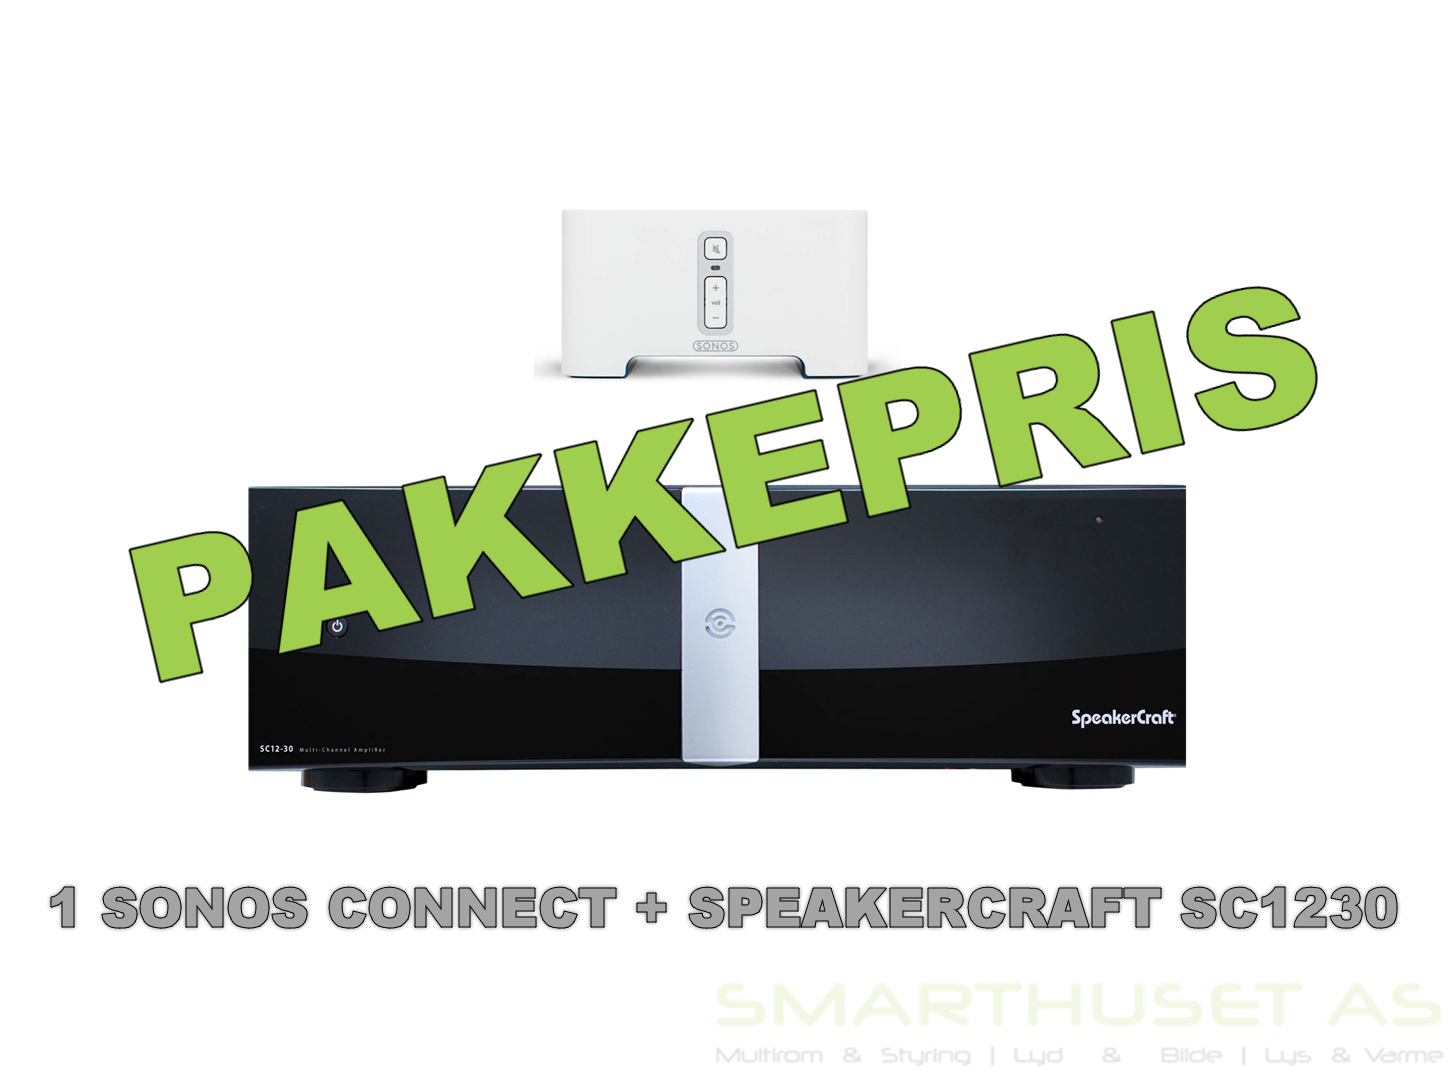 Bundle: 1 x Sonos Connect + 1 x SpeakerCraft SC1230